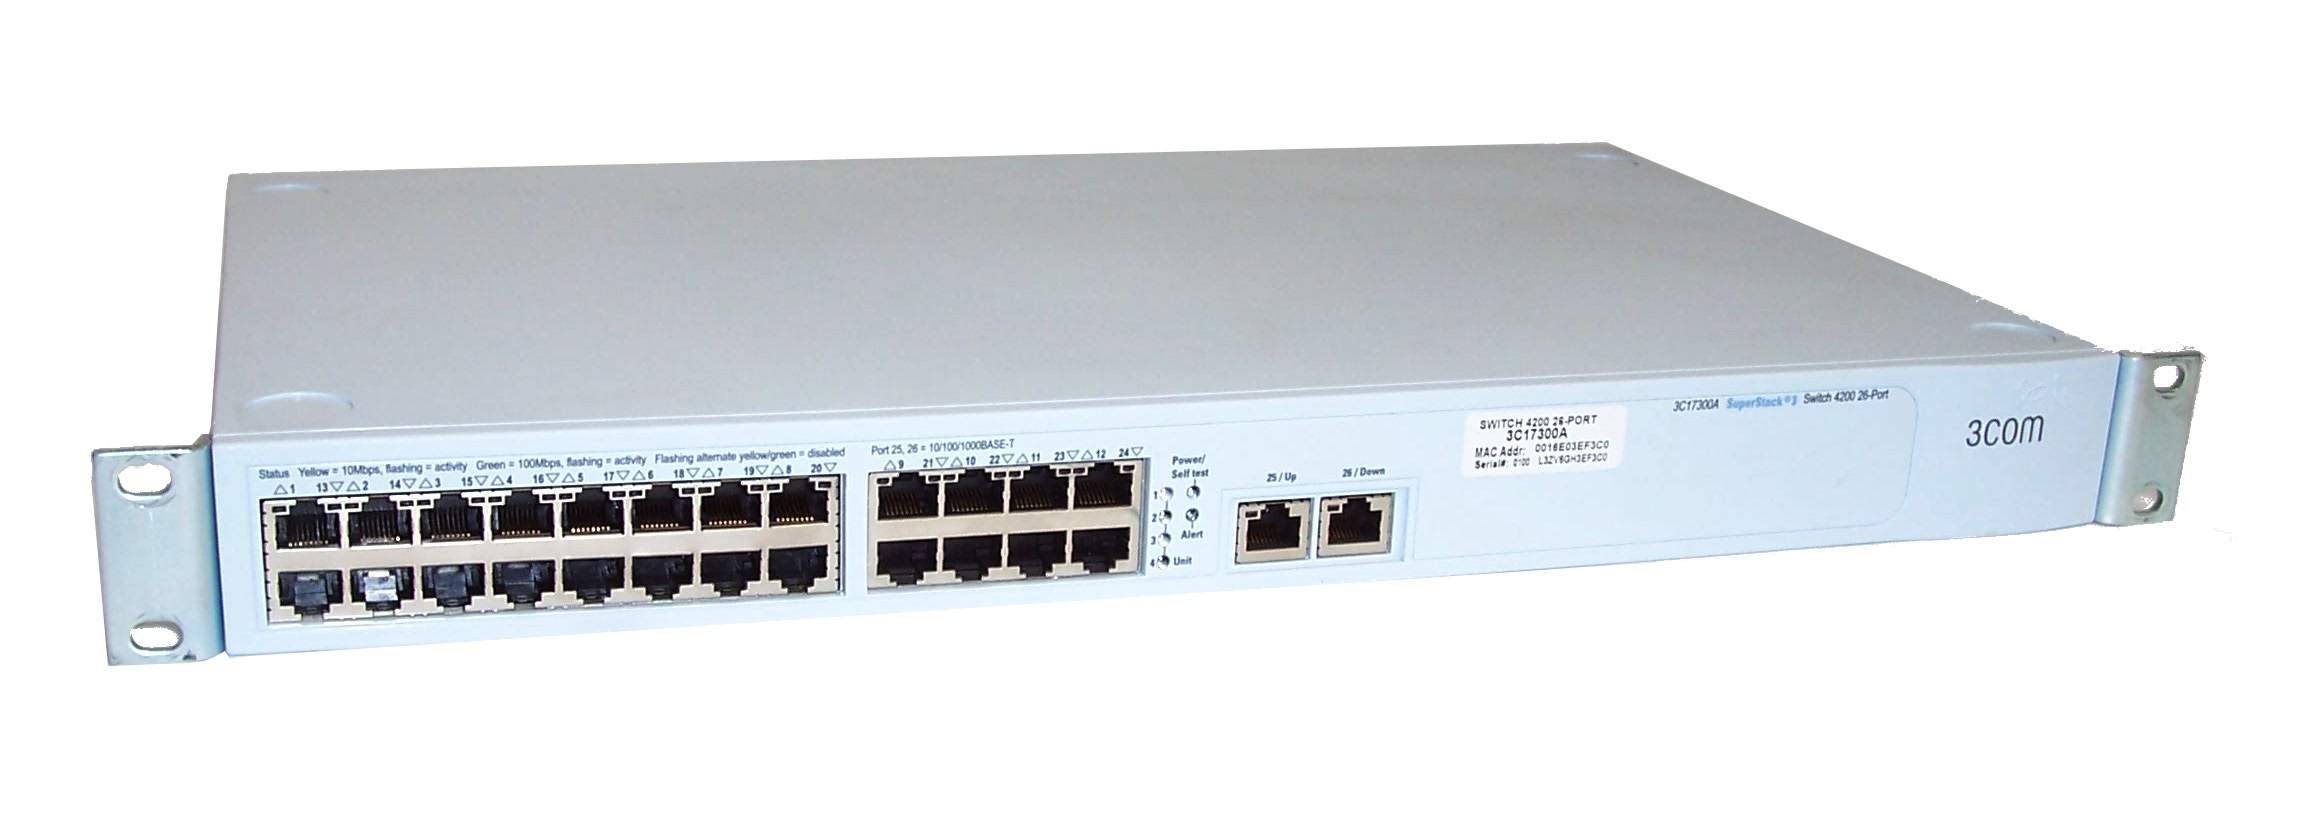 3com superstack 3 3226 manual